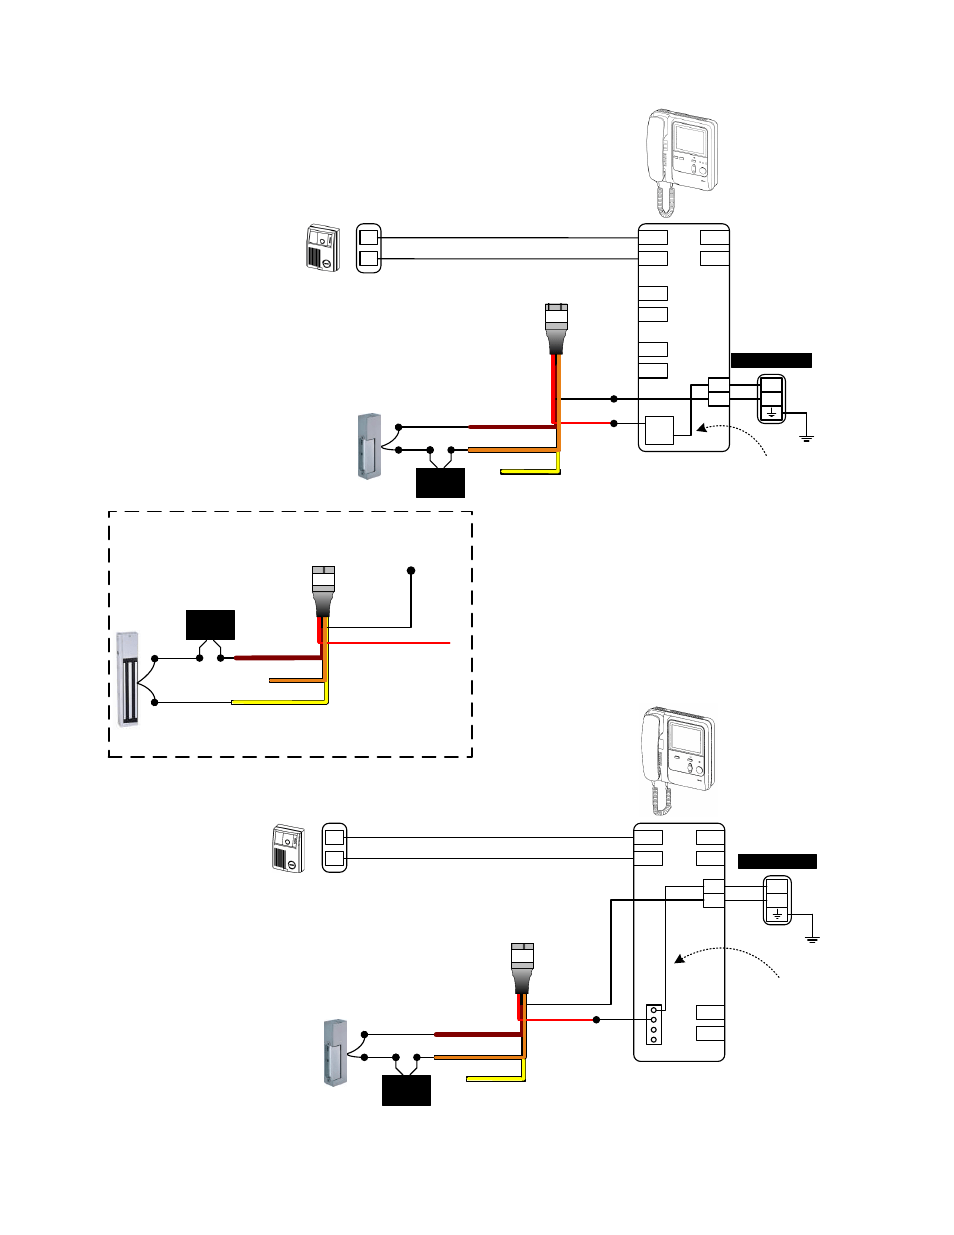 aiphone door release relay module ry 24l page2?resize\=665%2C861 wiring diagram hid edge solo 5 pin relay wiring diagram, led von duprin wiring diagram at reclaimingppi.co